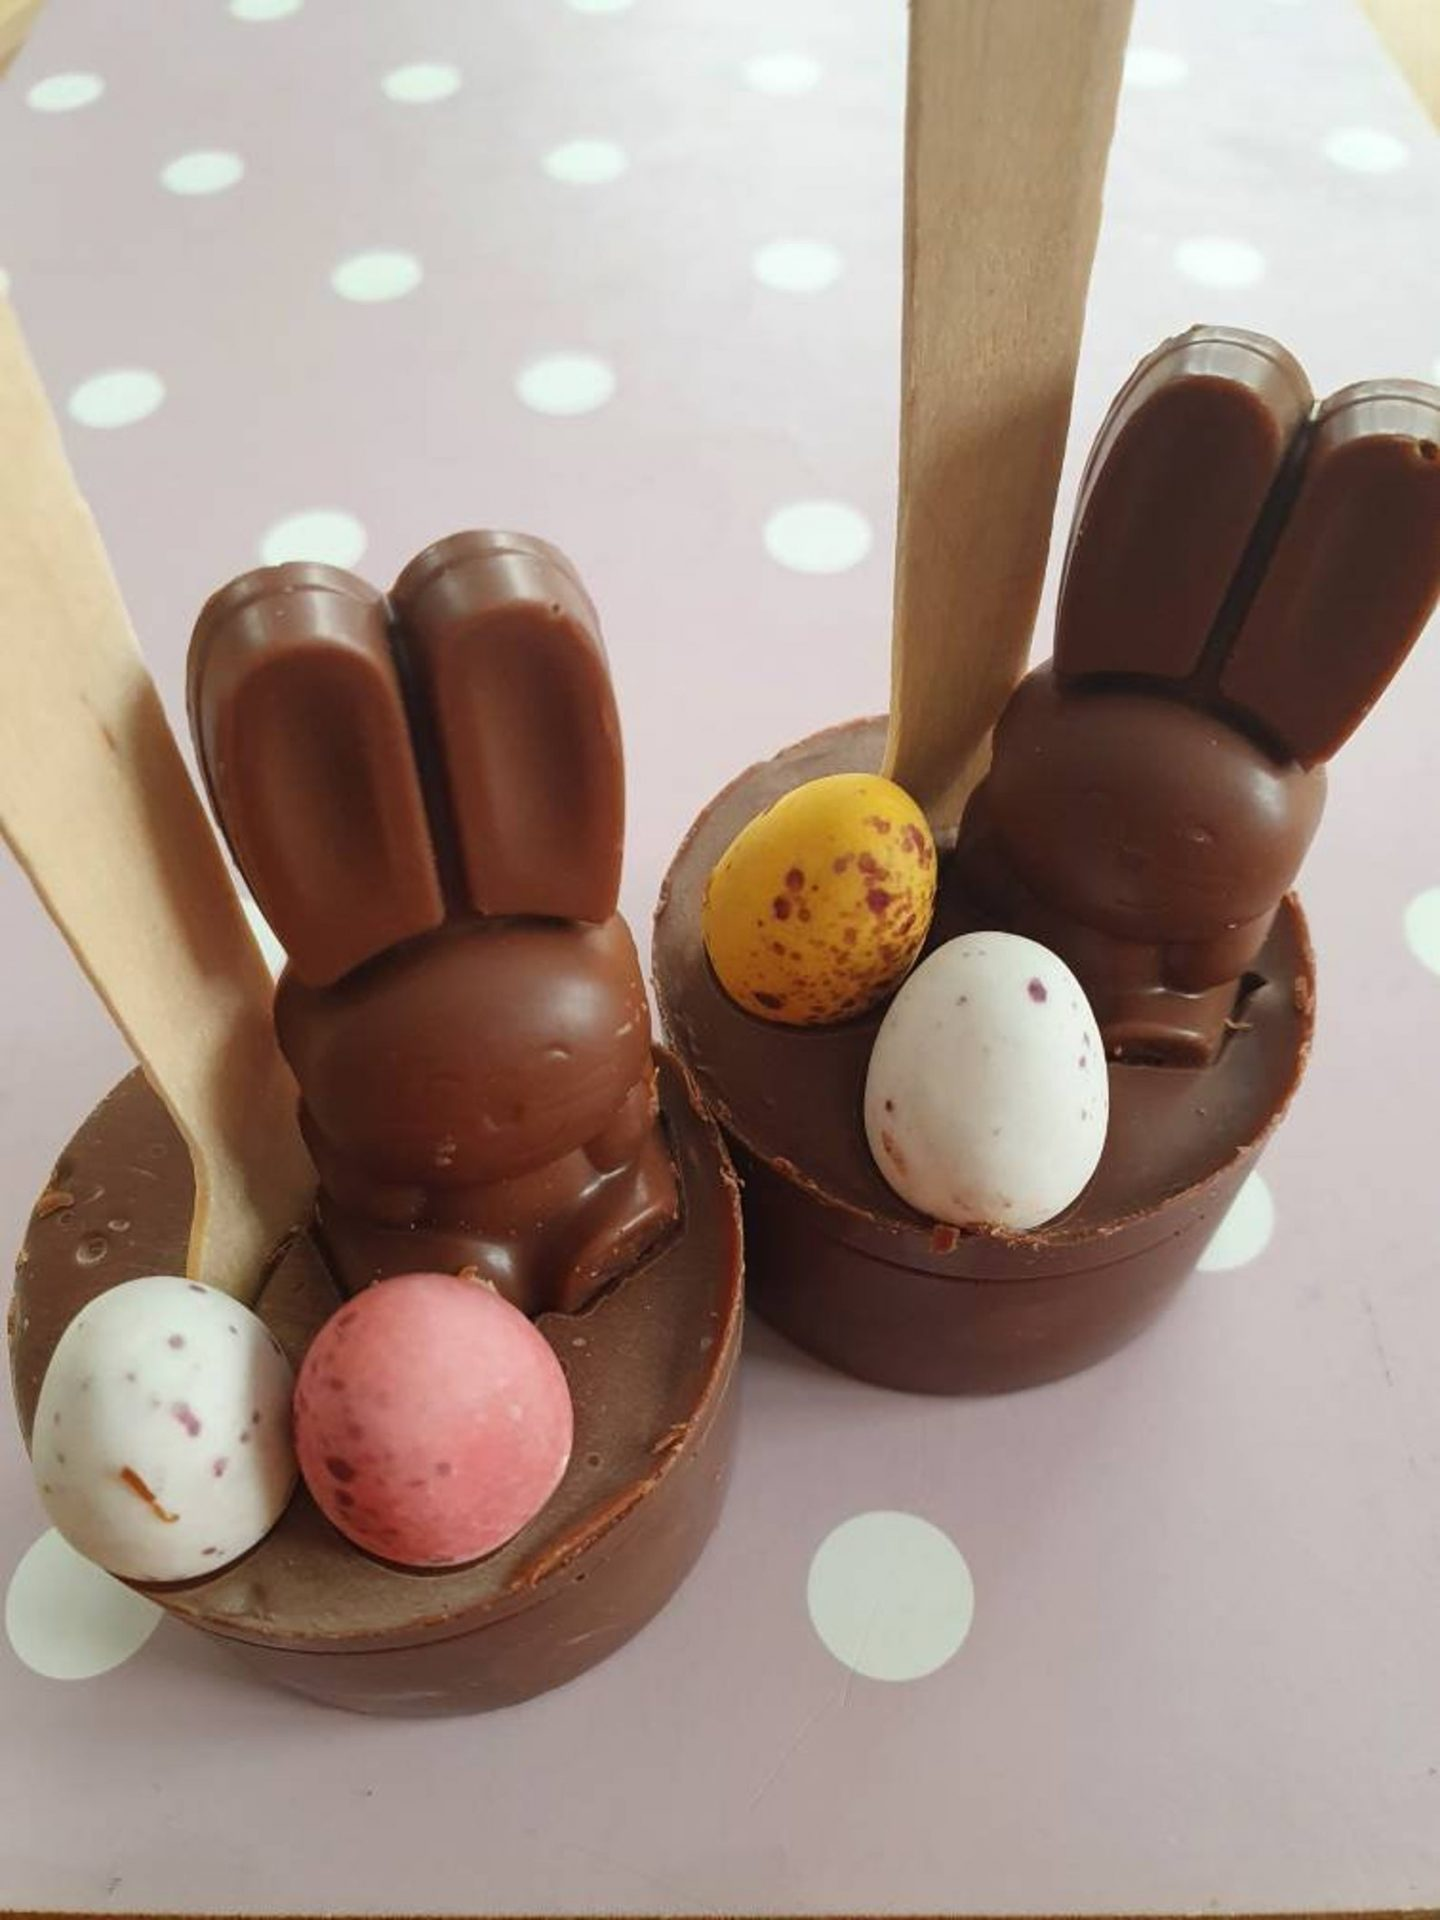 Cute Easter Hot Chocolate Stirrer Spoon With Bunny